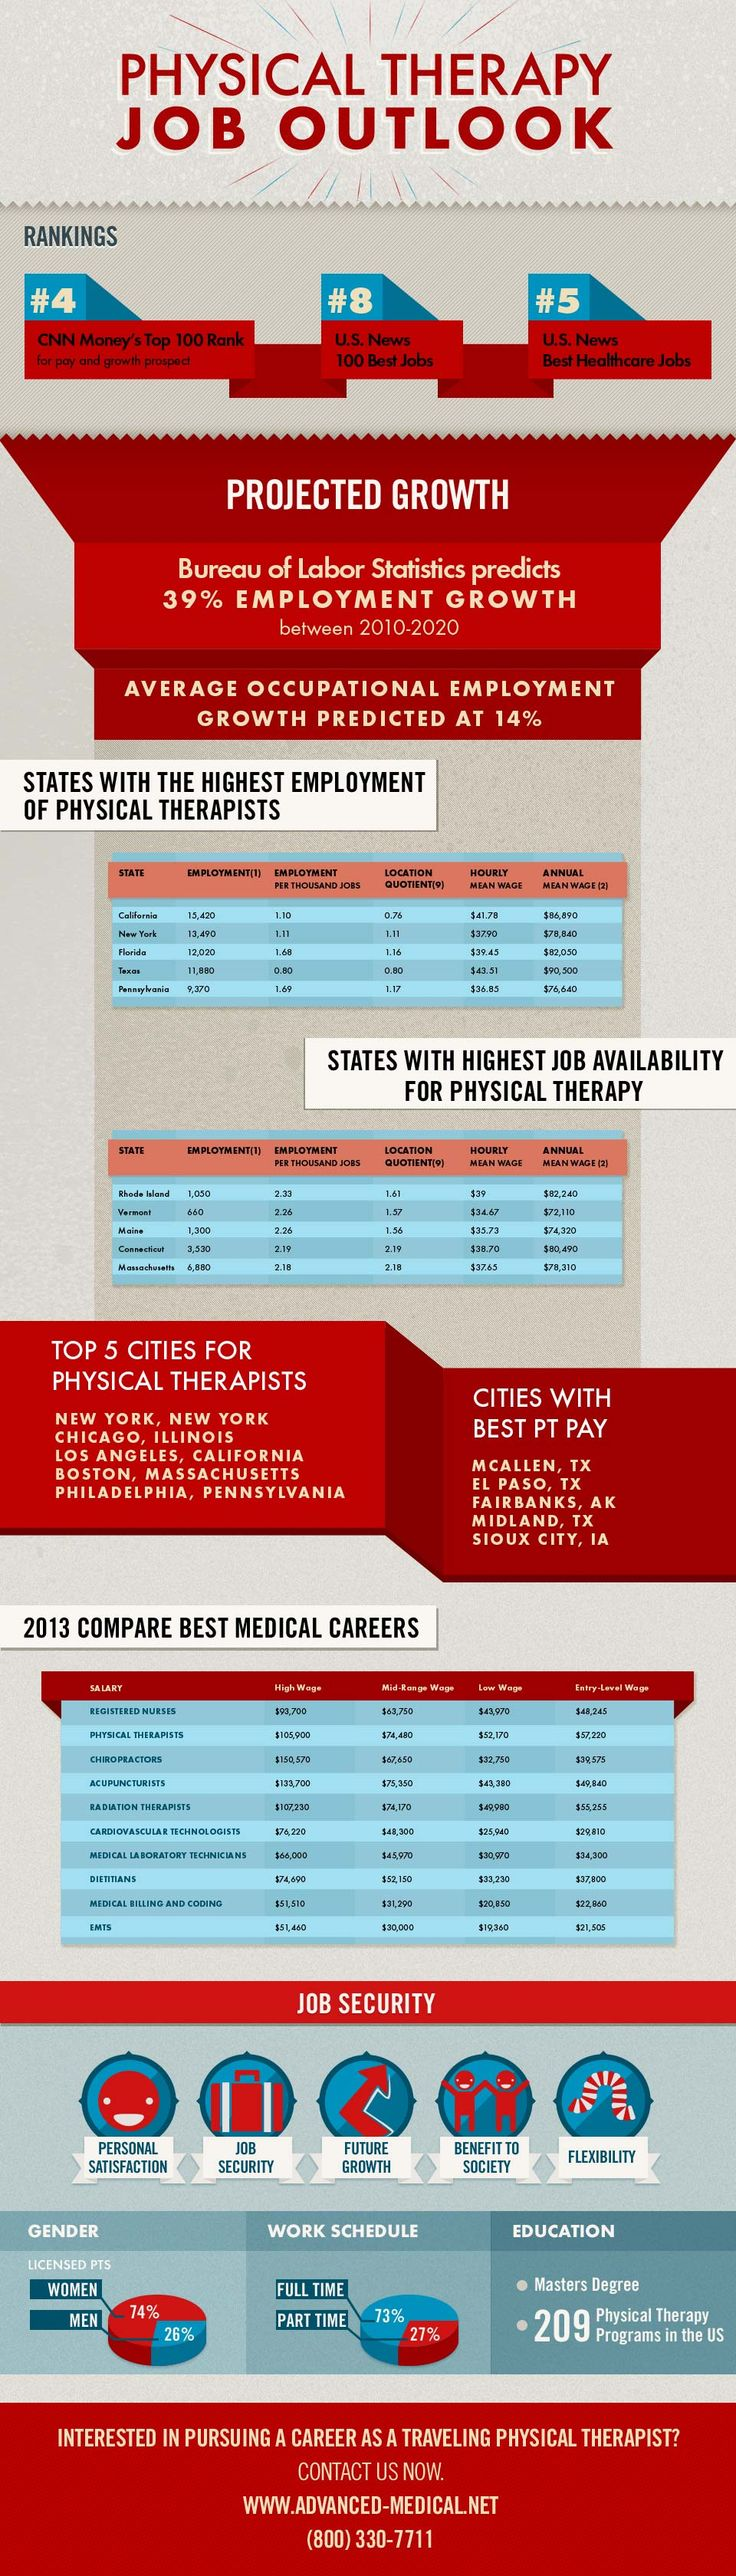 Physical Therapy Job Outlook [infographic]